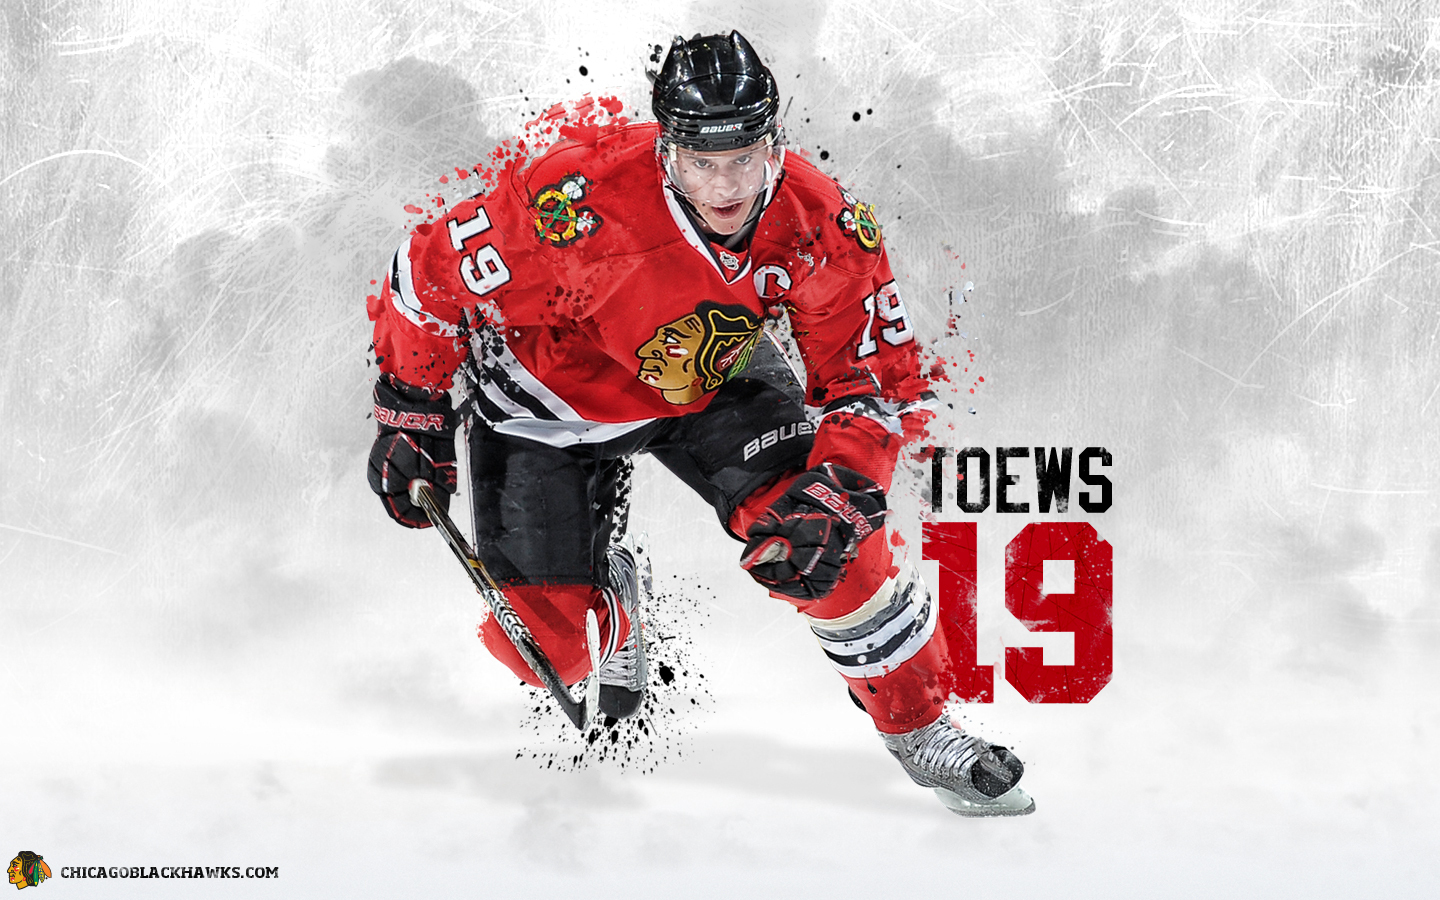 Chicago Blackhawks Wallpaper Collection Sports Geekery 1440x900